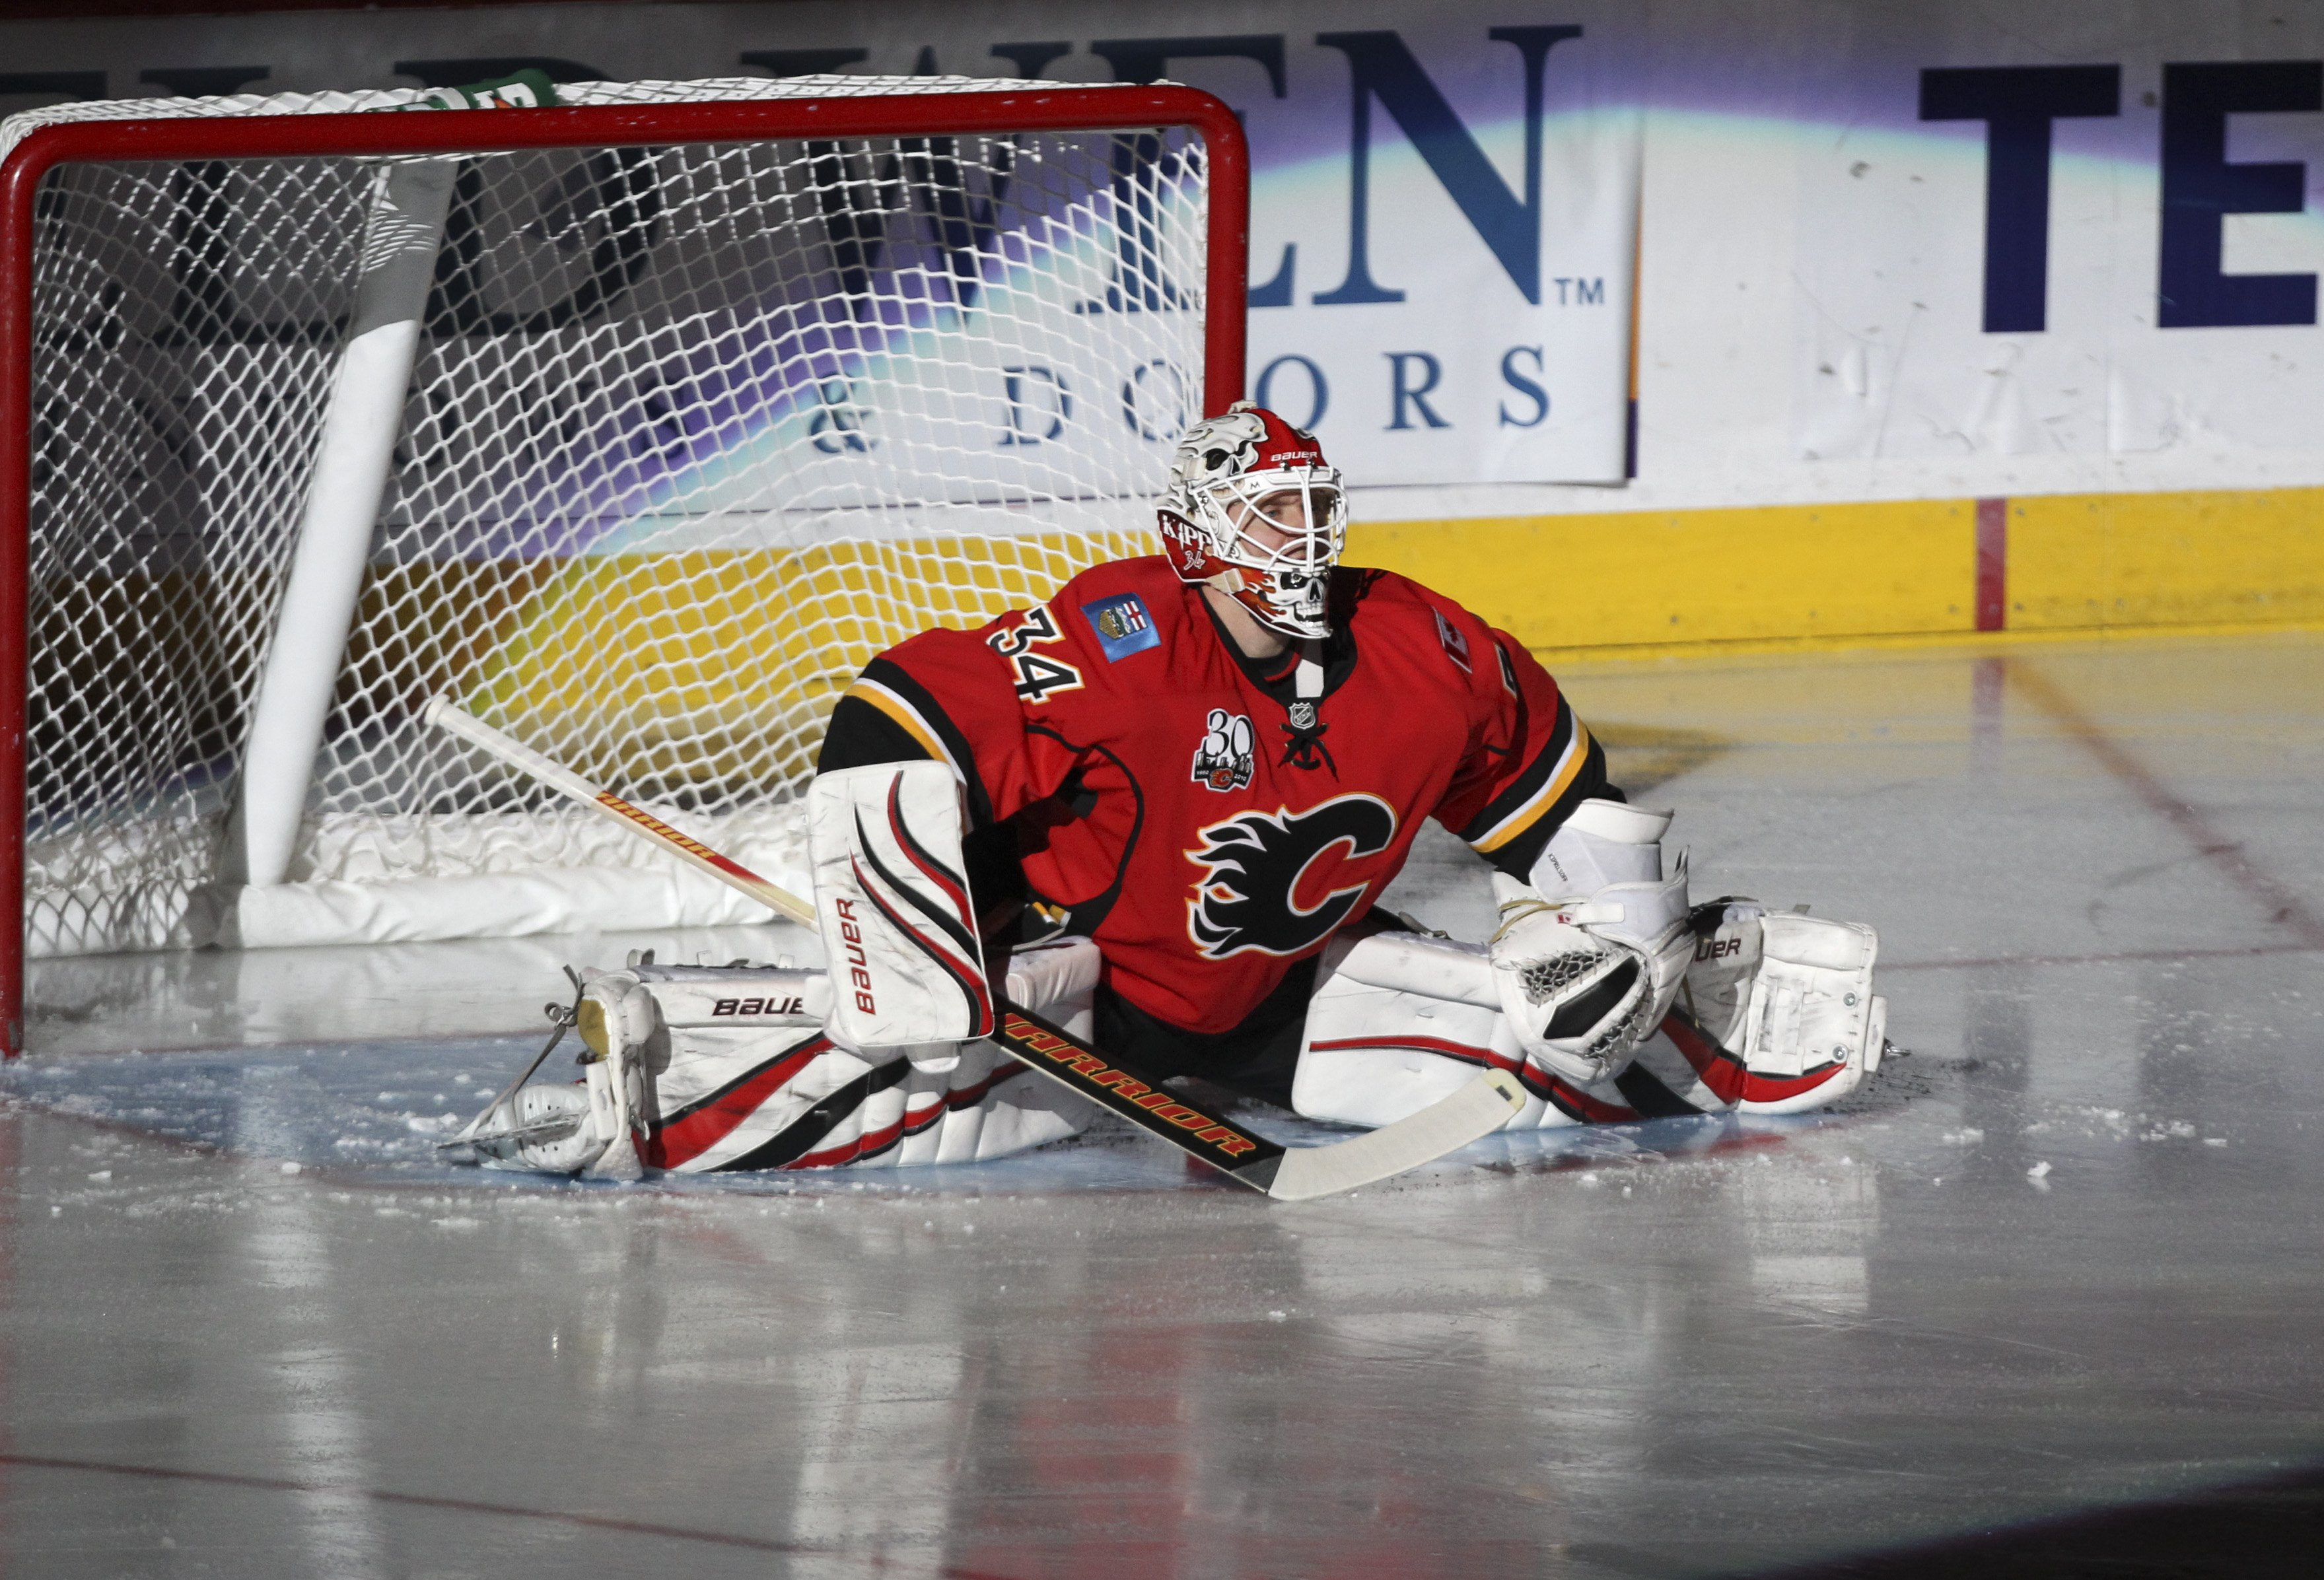 CALGARY, AB -APRIL 6: Miikka Kiprusoff #34 of the Calgary Flames stretches as he is introduced before playing the San Jose Sharks in the NHL game on April 6, 2010 at the Pengrowth Saddledome in Calgary, Alberta. (Photo by Mike Ridewood/Getty Images)